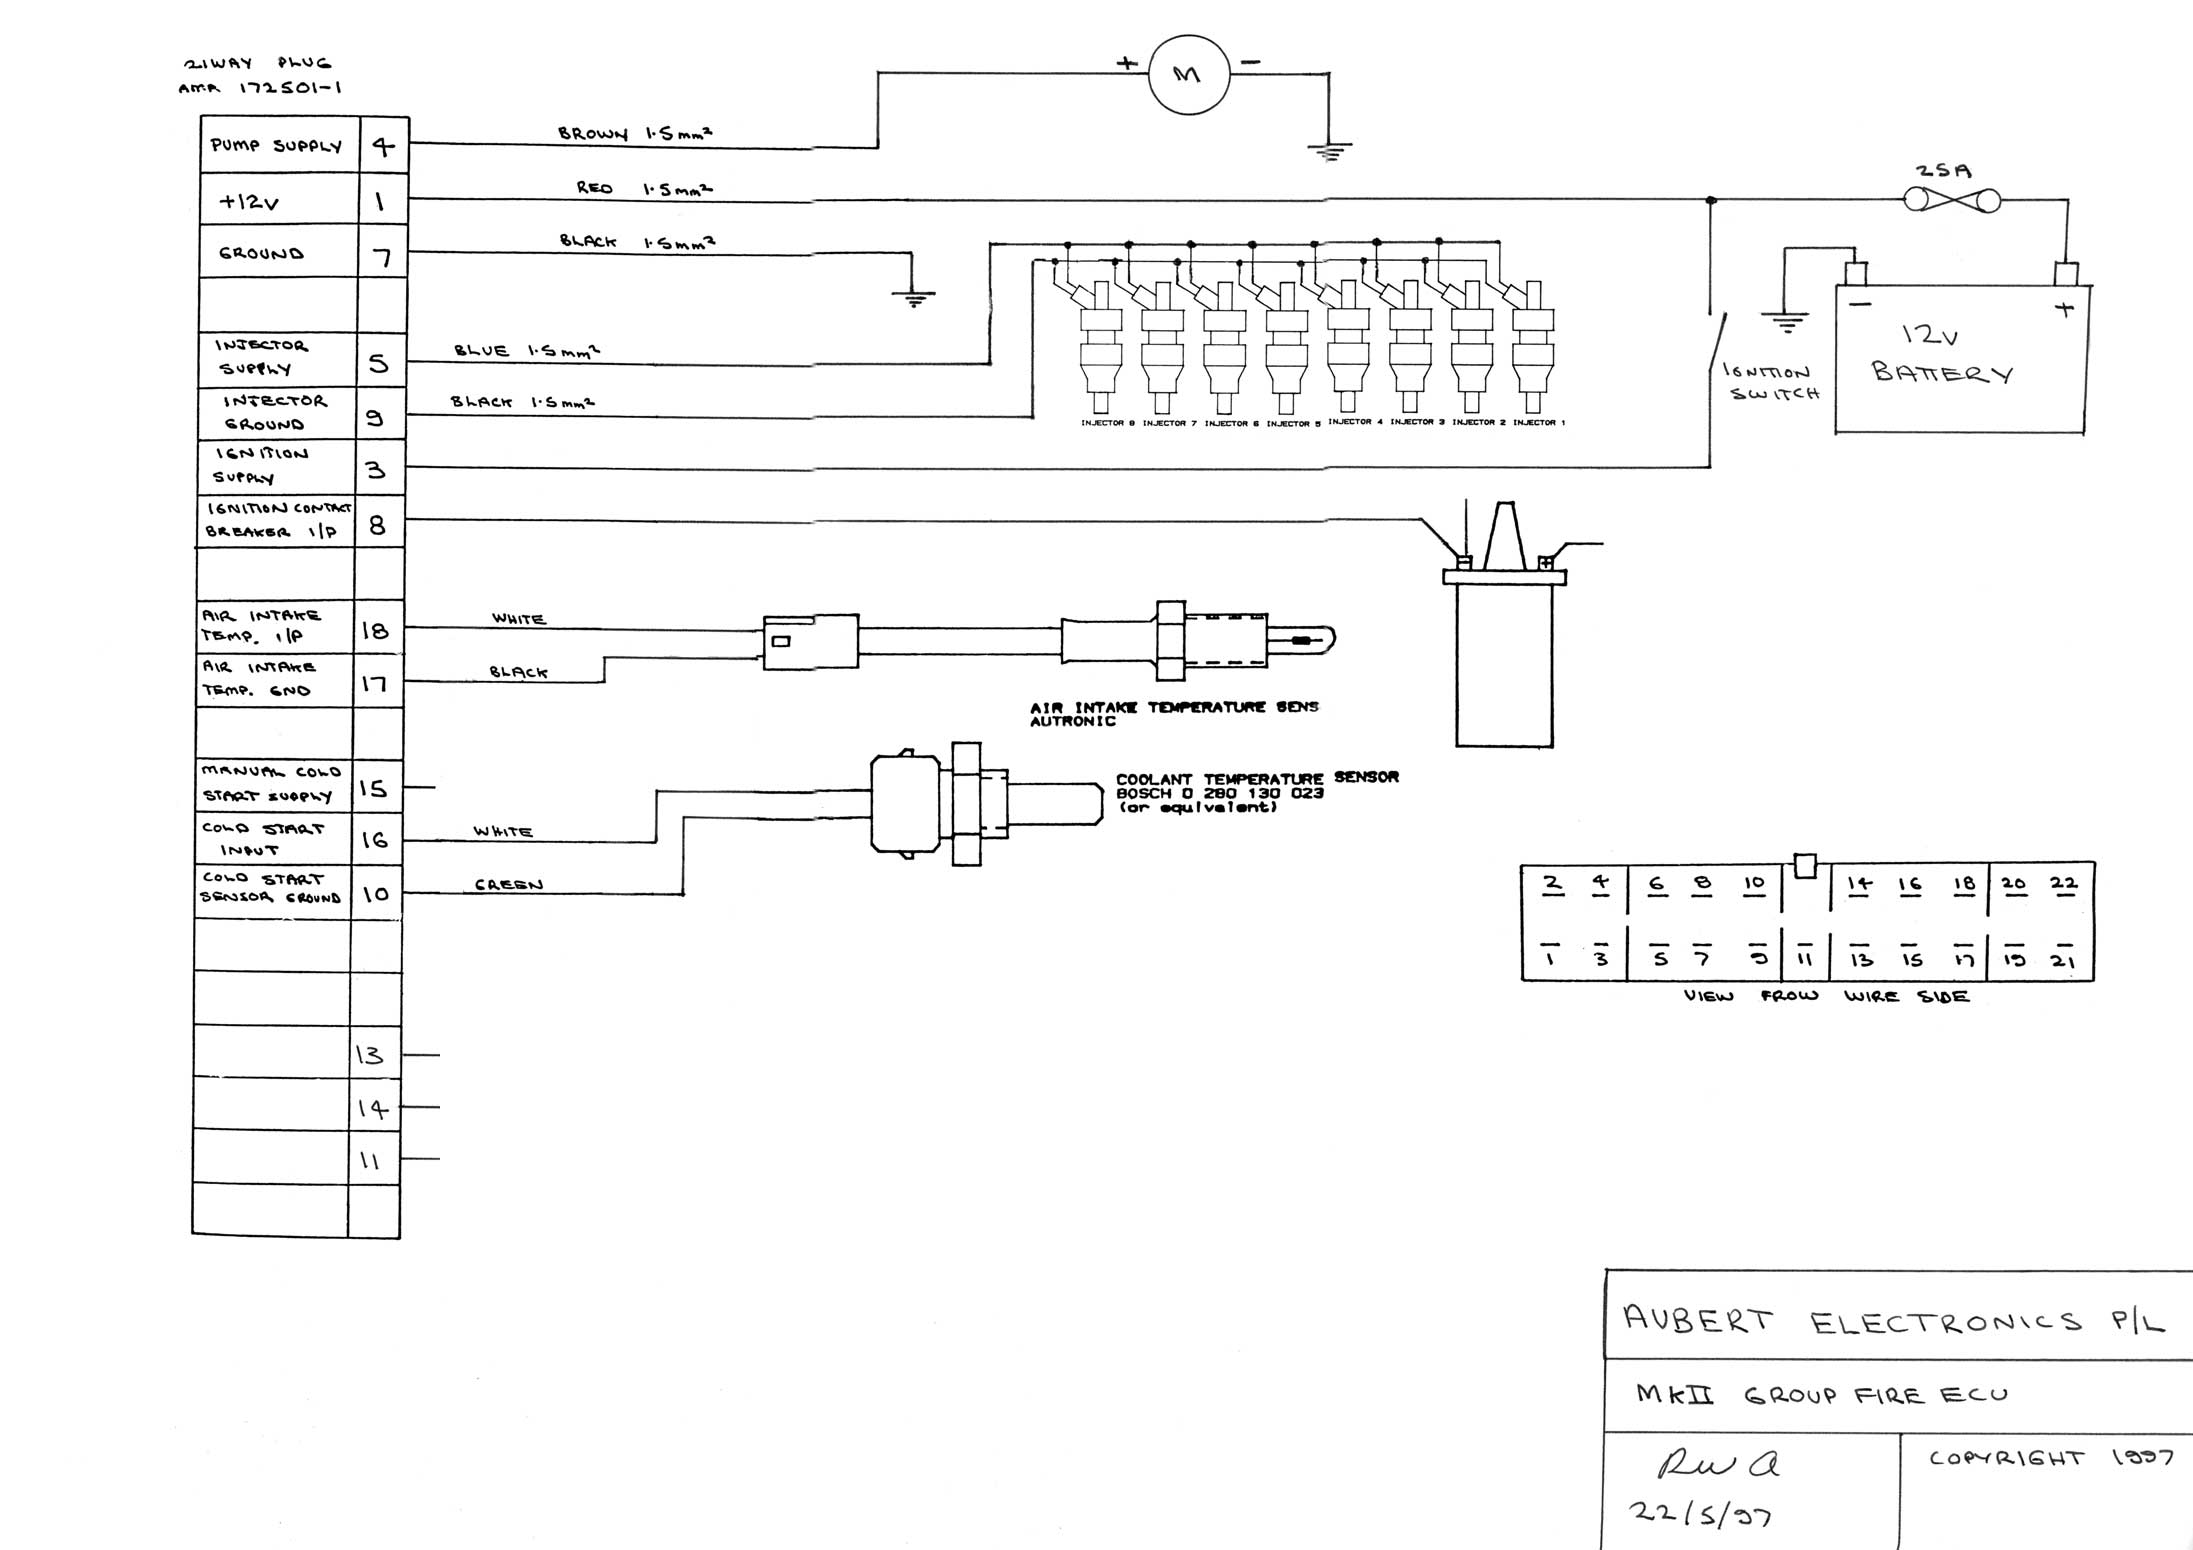 Group fire_wiring autronic smc wiring diagram trailer wiring diagram \u2022 wiring  at soozxer.org